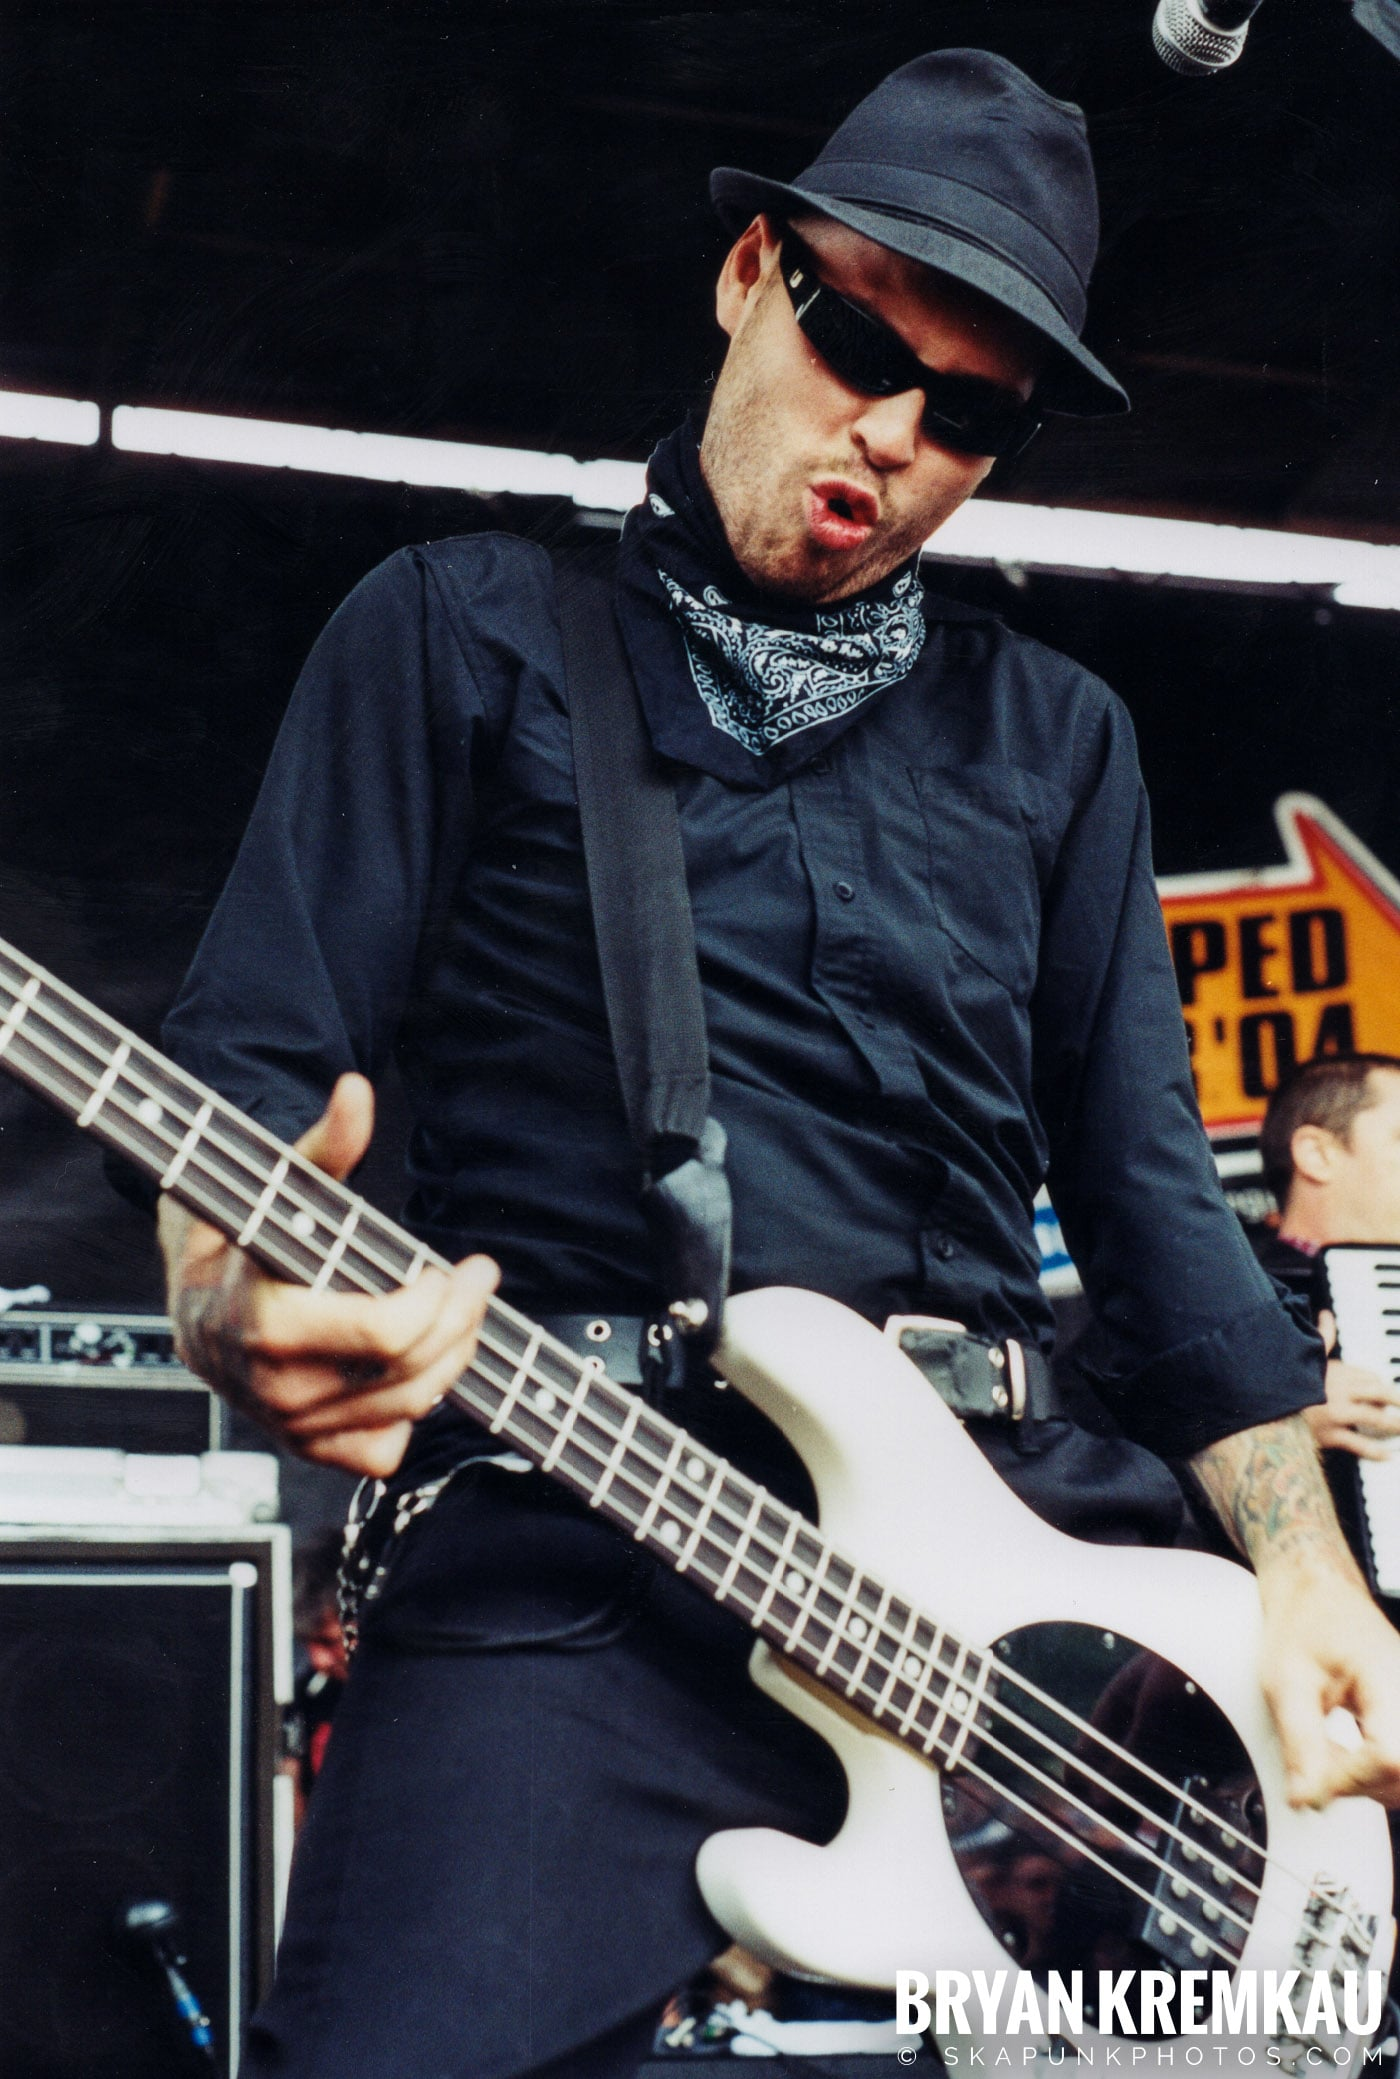 Flogging Molly @ Vans Warped Tour, Randall's Island, NYC - 8.7.04 (12)